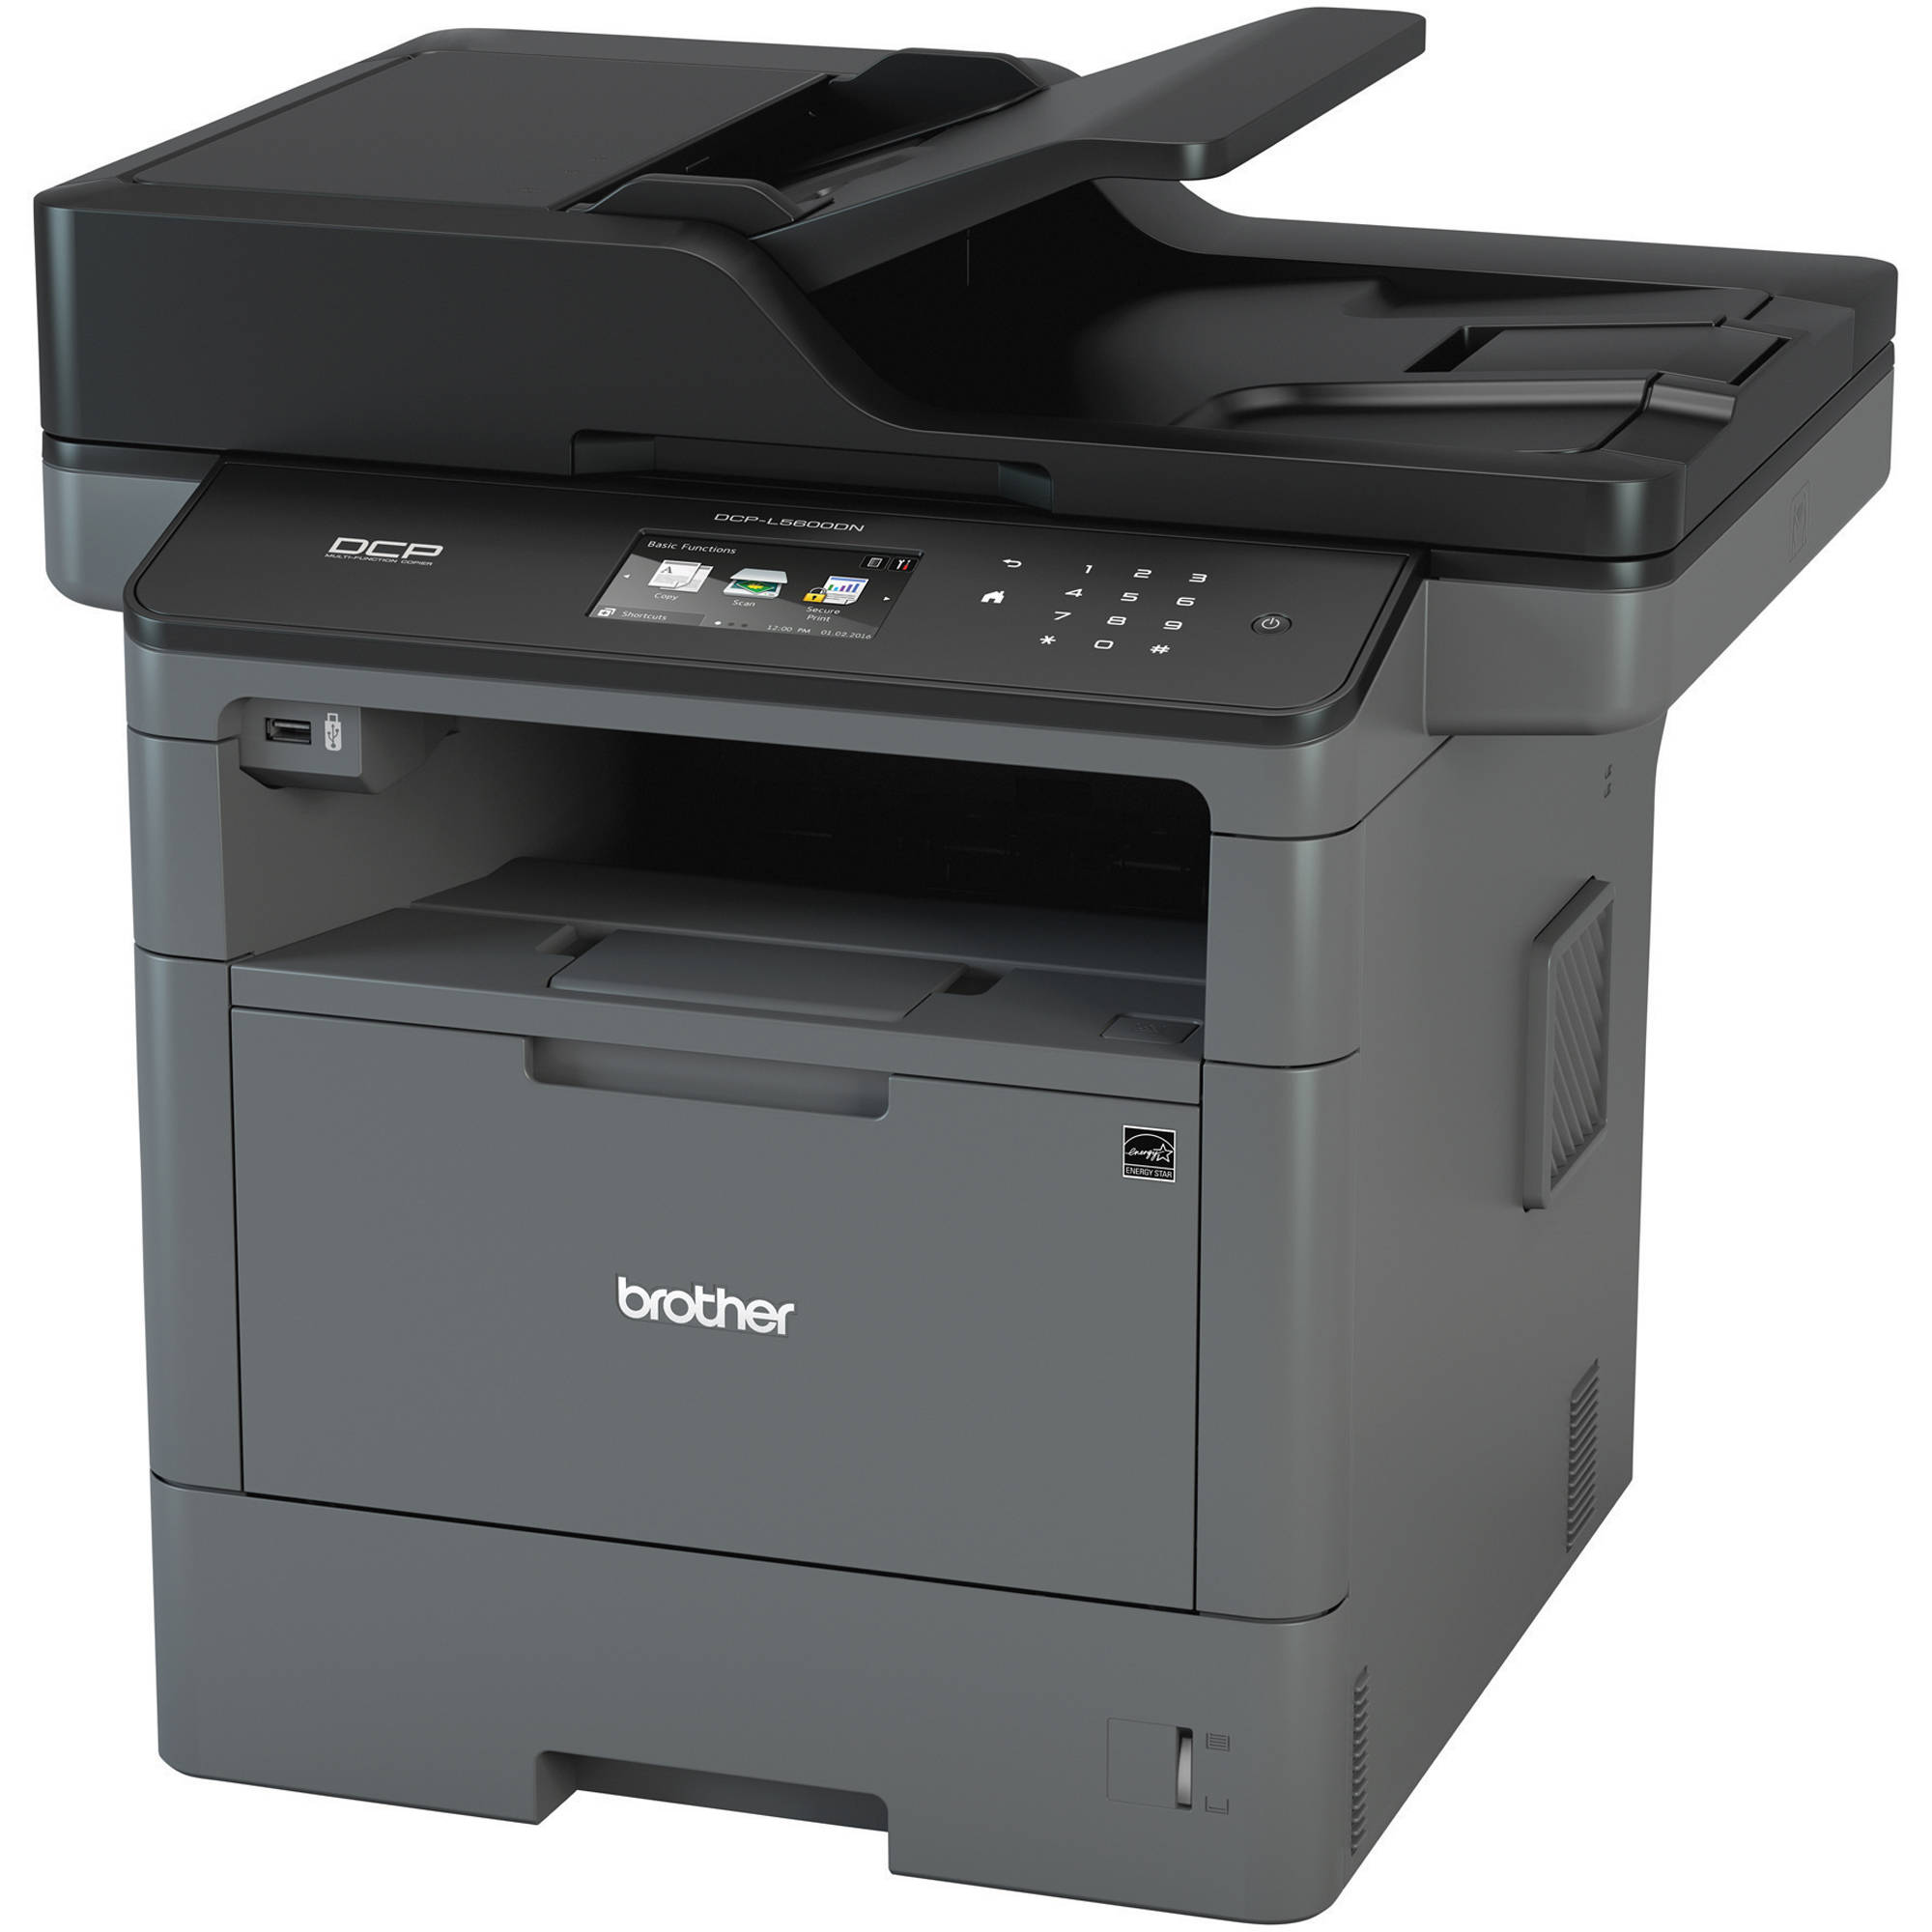 Brother DCP-L5600dn All in One Monochrome Laser Printer